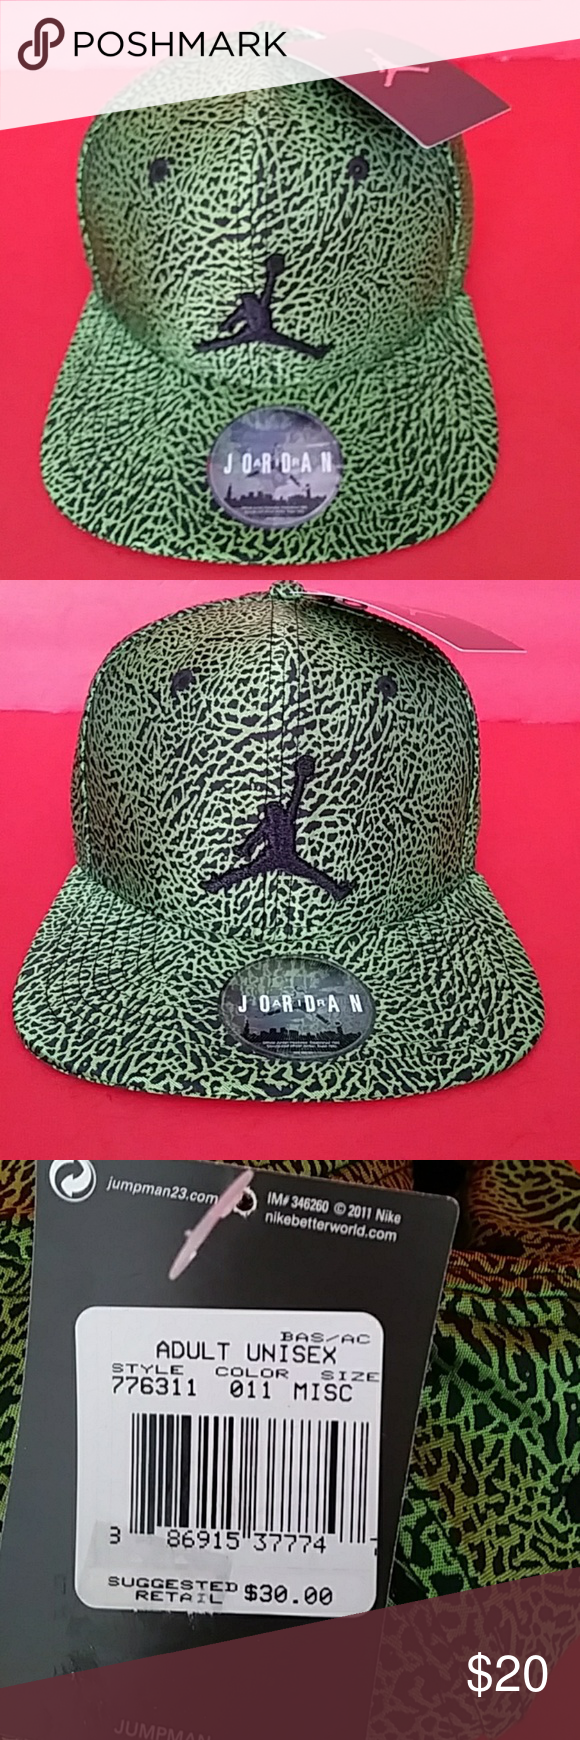 702a3c85bc0 BRAND NEW AIR JORDAN. Hat 100% AUTHENTIC NIKE. AIR JORDAN. BAS  AC. HAT  ADULT UNISEX FOR BAS AC SNAPBACK REASONABLE OFFICE IS WELCOME Accessories  Hats